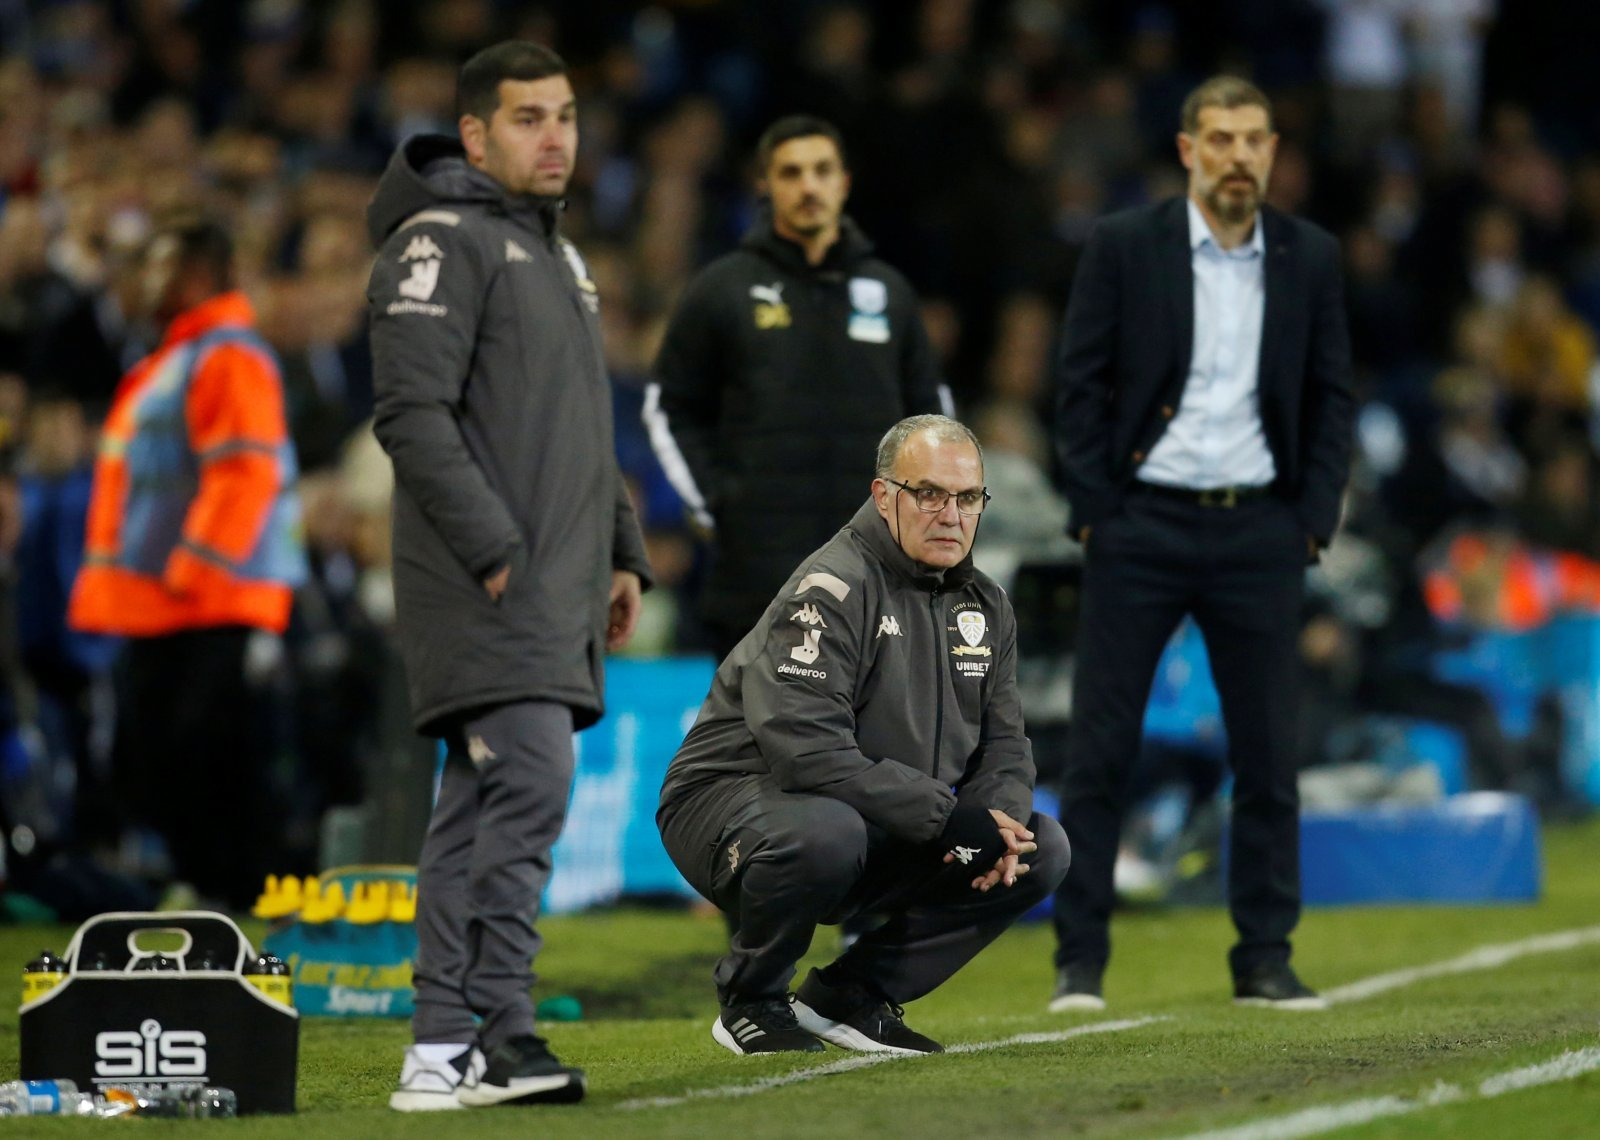 Leeds United: Marcelo Bielsa's 3 biggest problems left in 2019